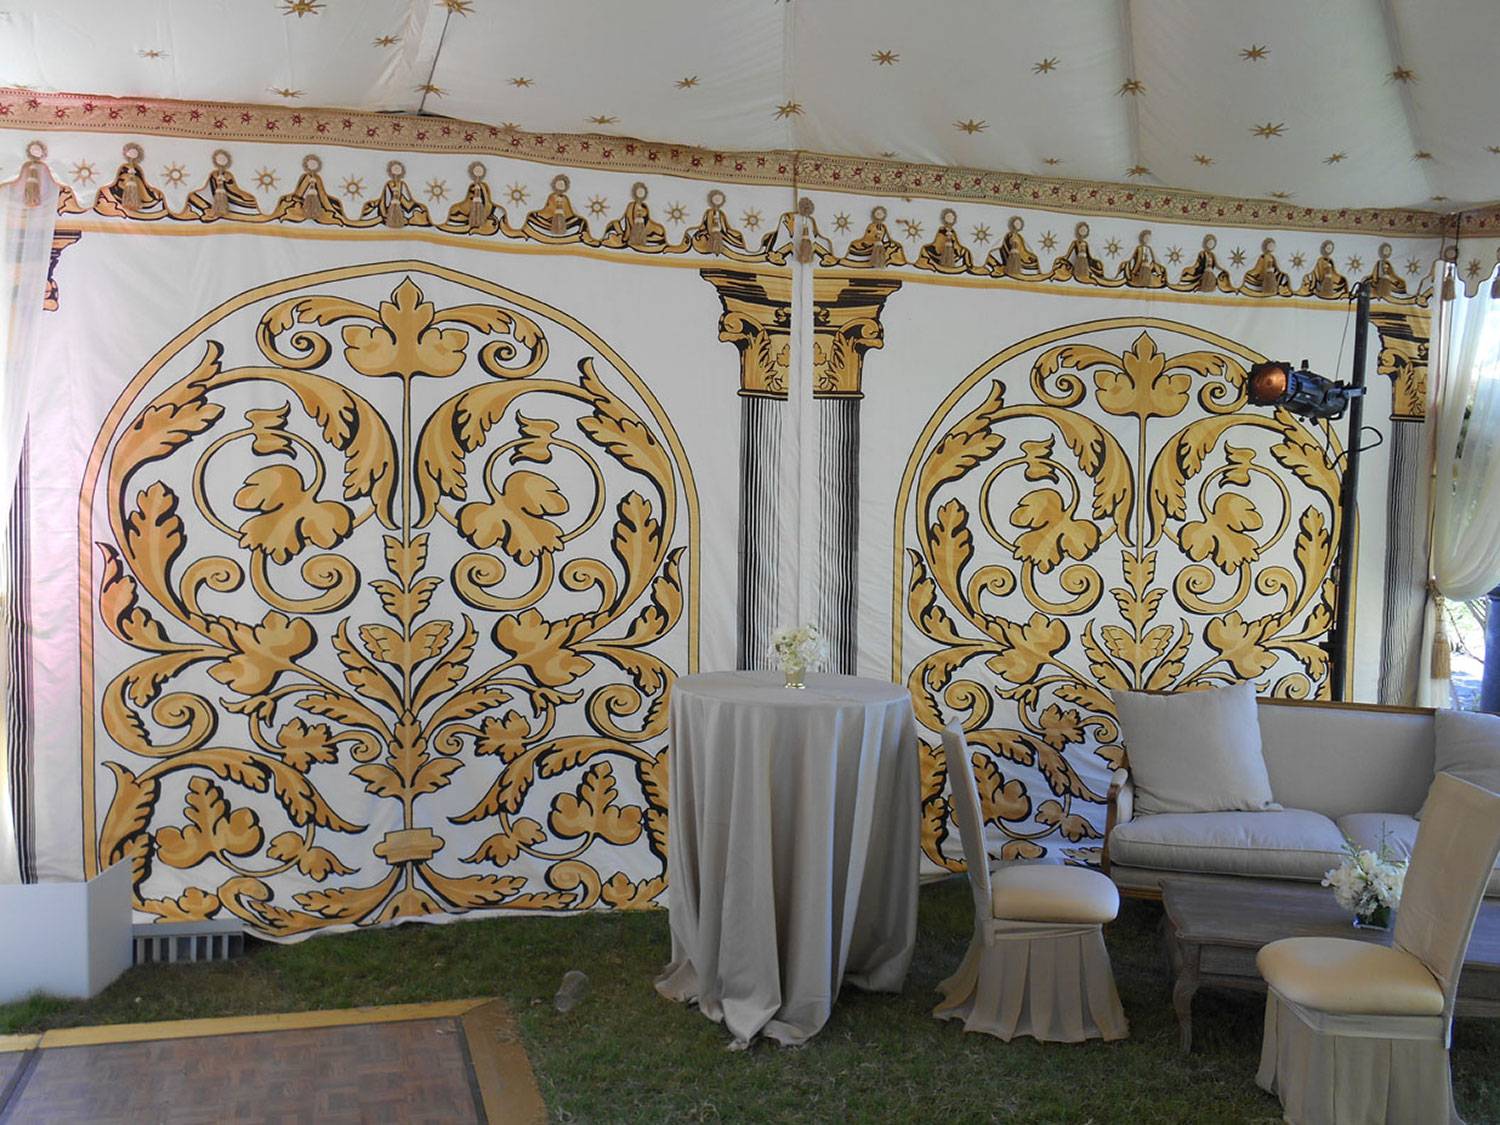 raj-tents-other-themes-romanesque-walls.jpg